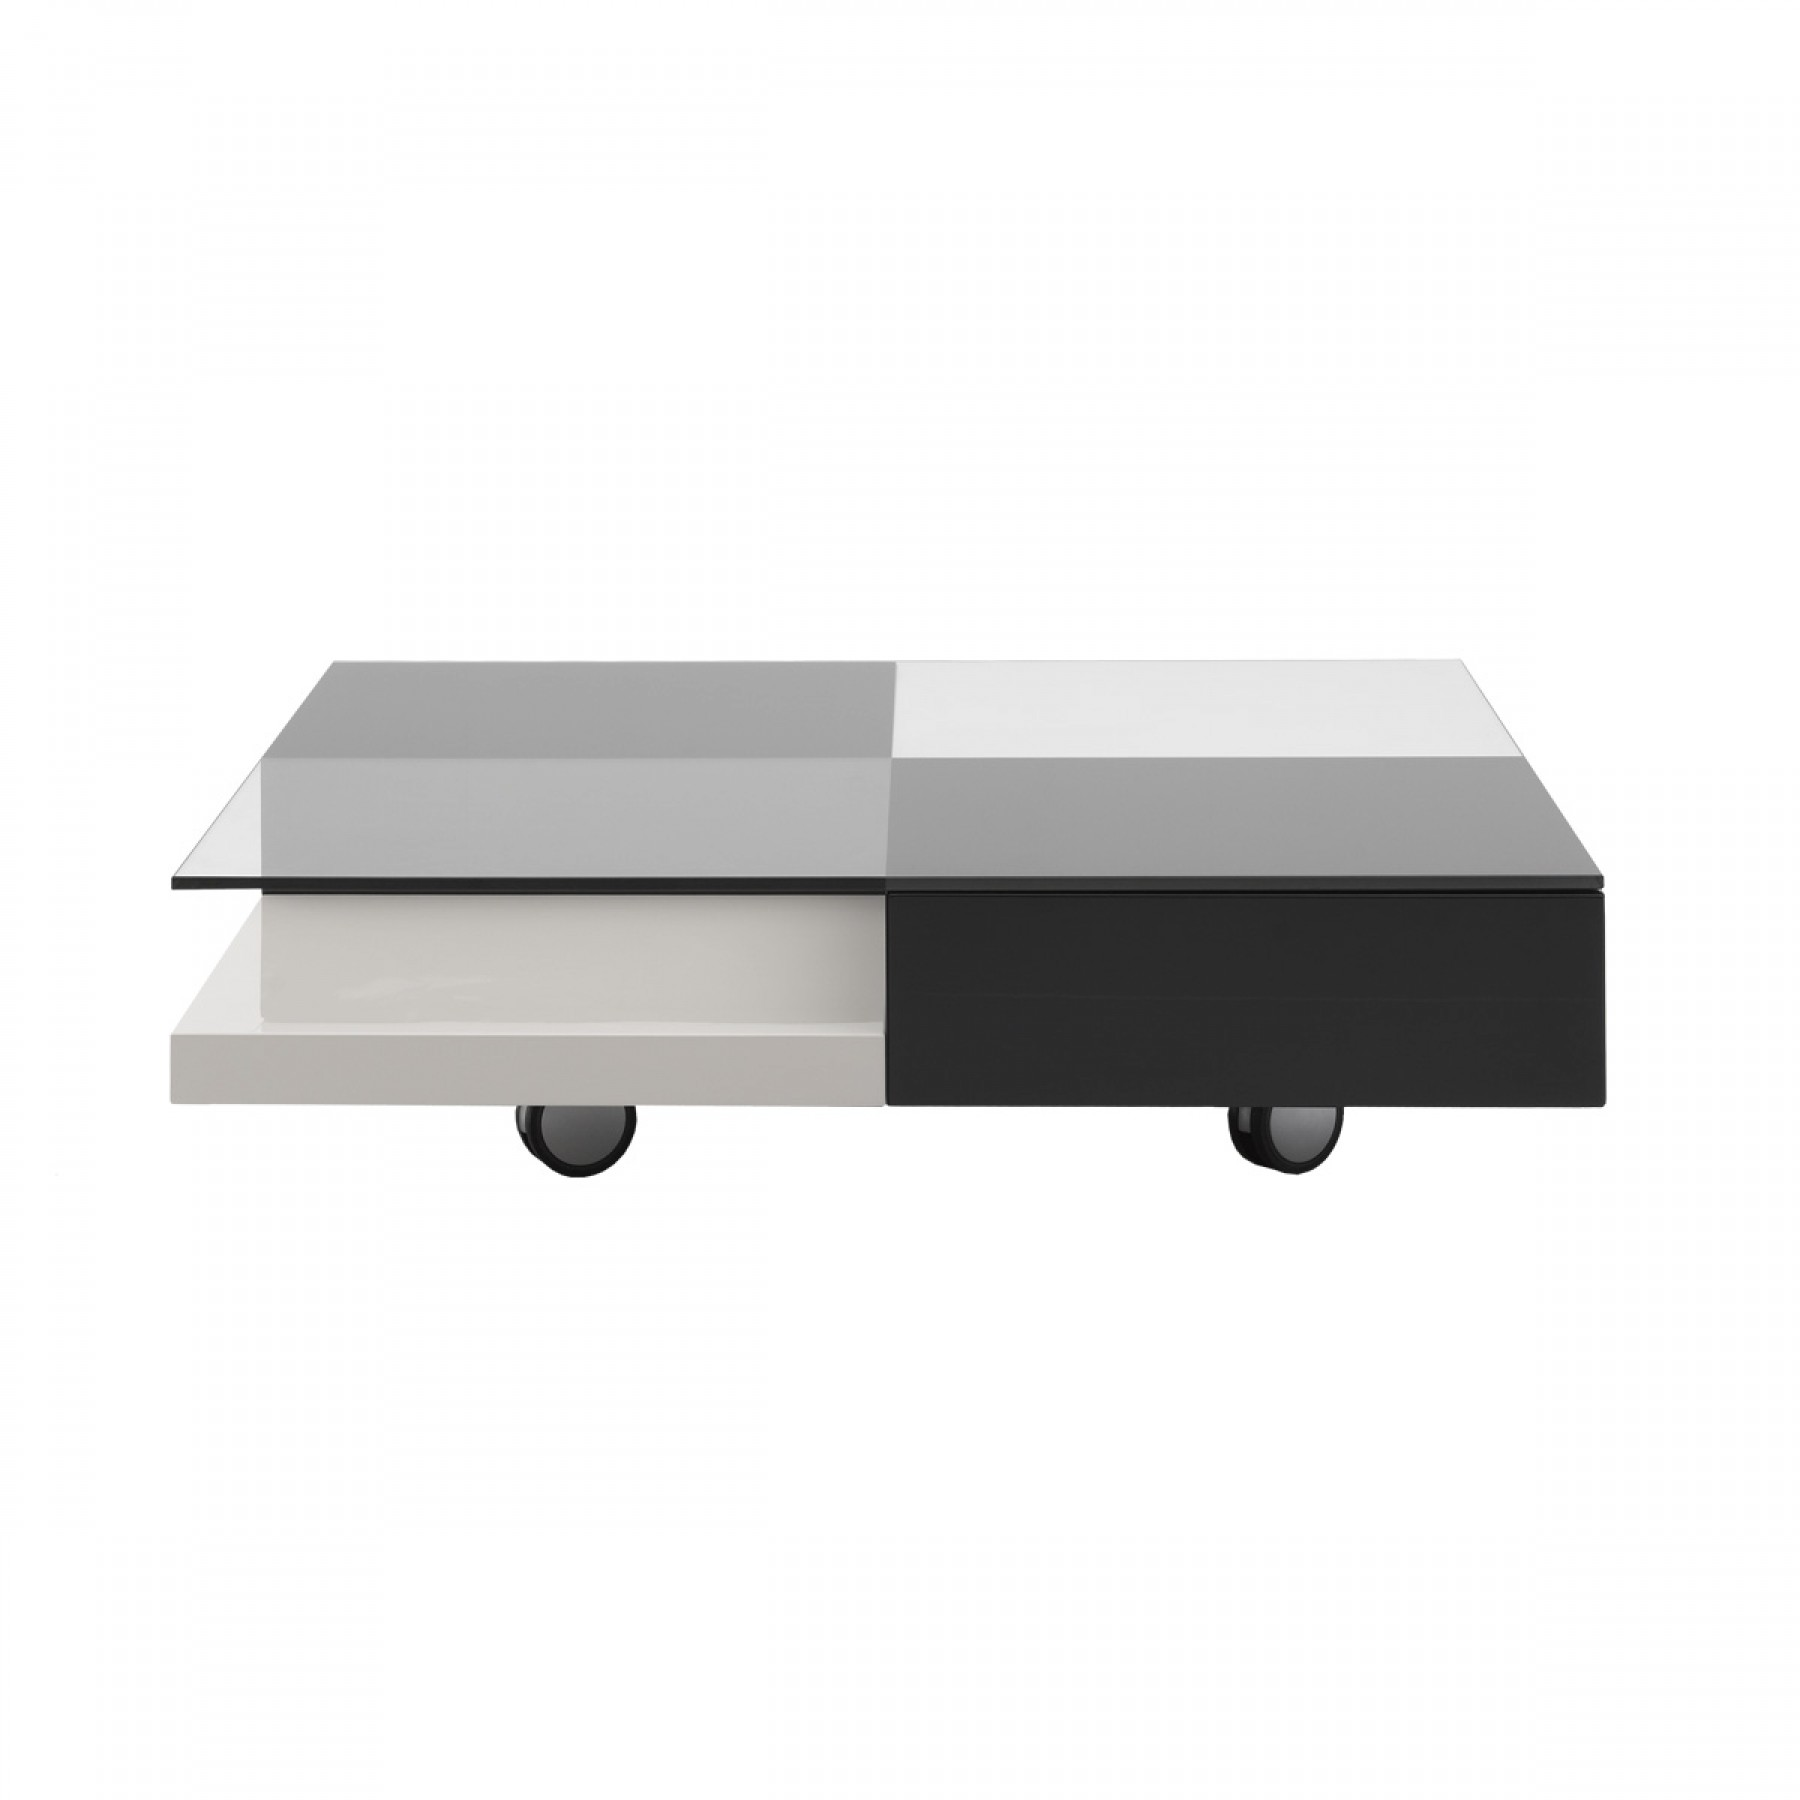 Domino Grey Beige Square Coffee Table